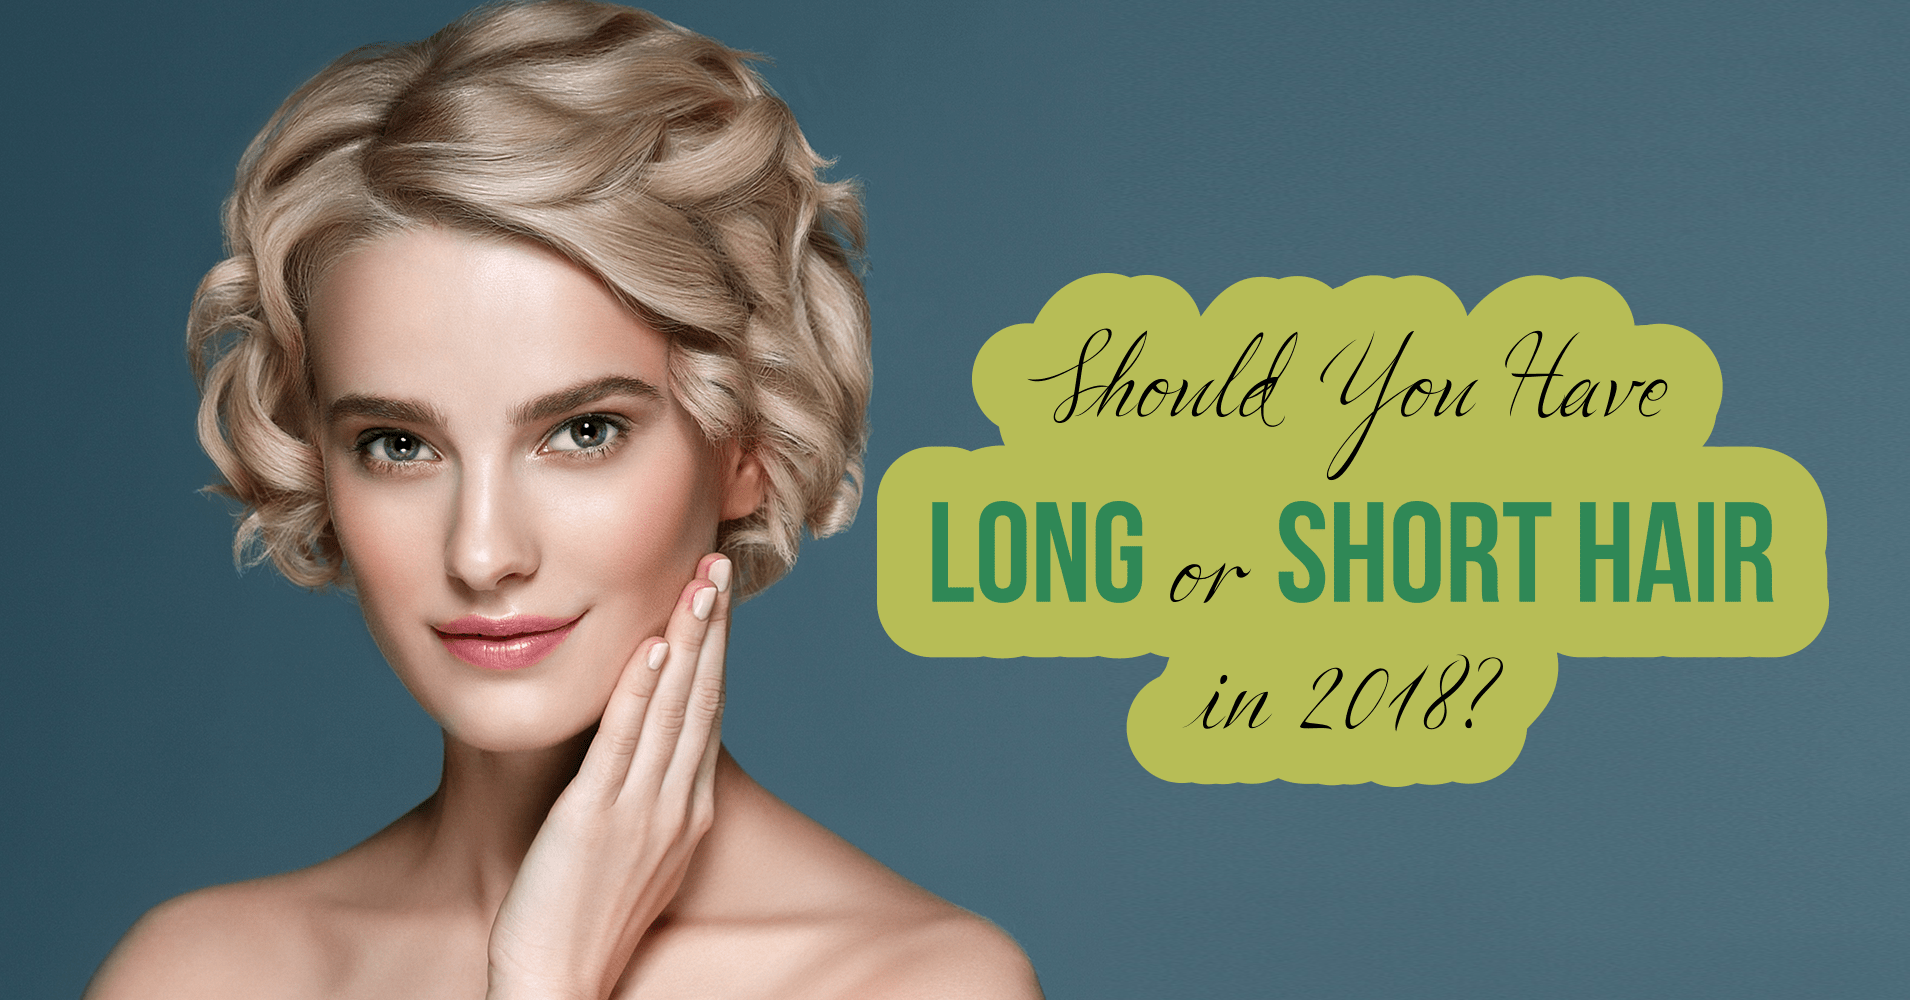 Should You Have Long Or Short Hair In